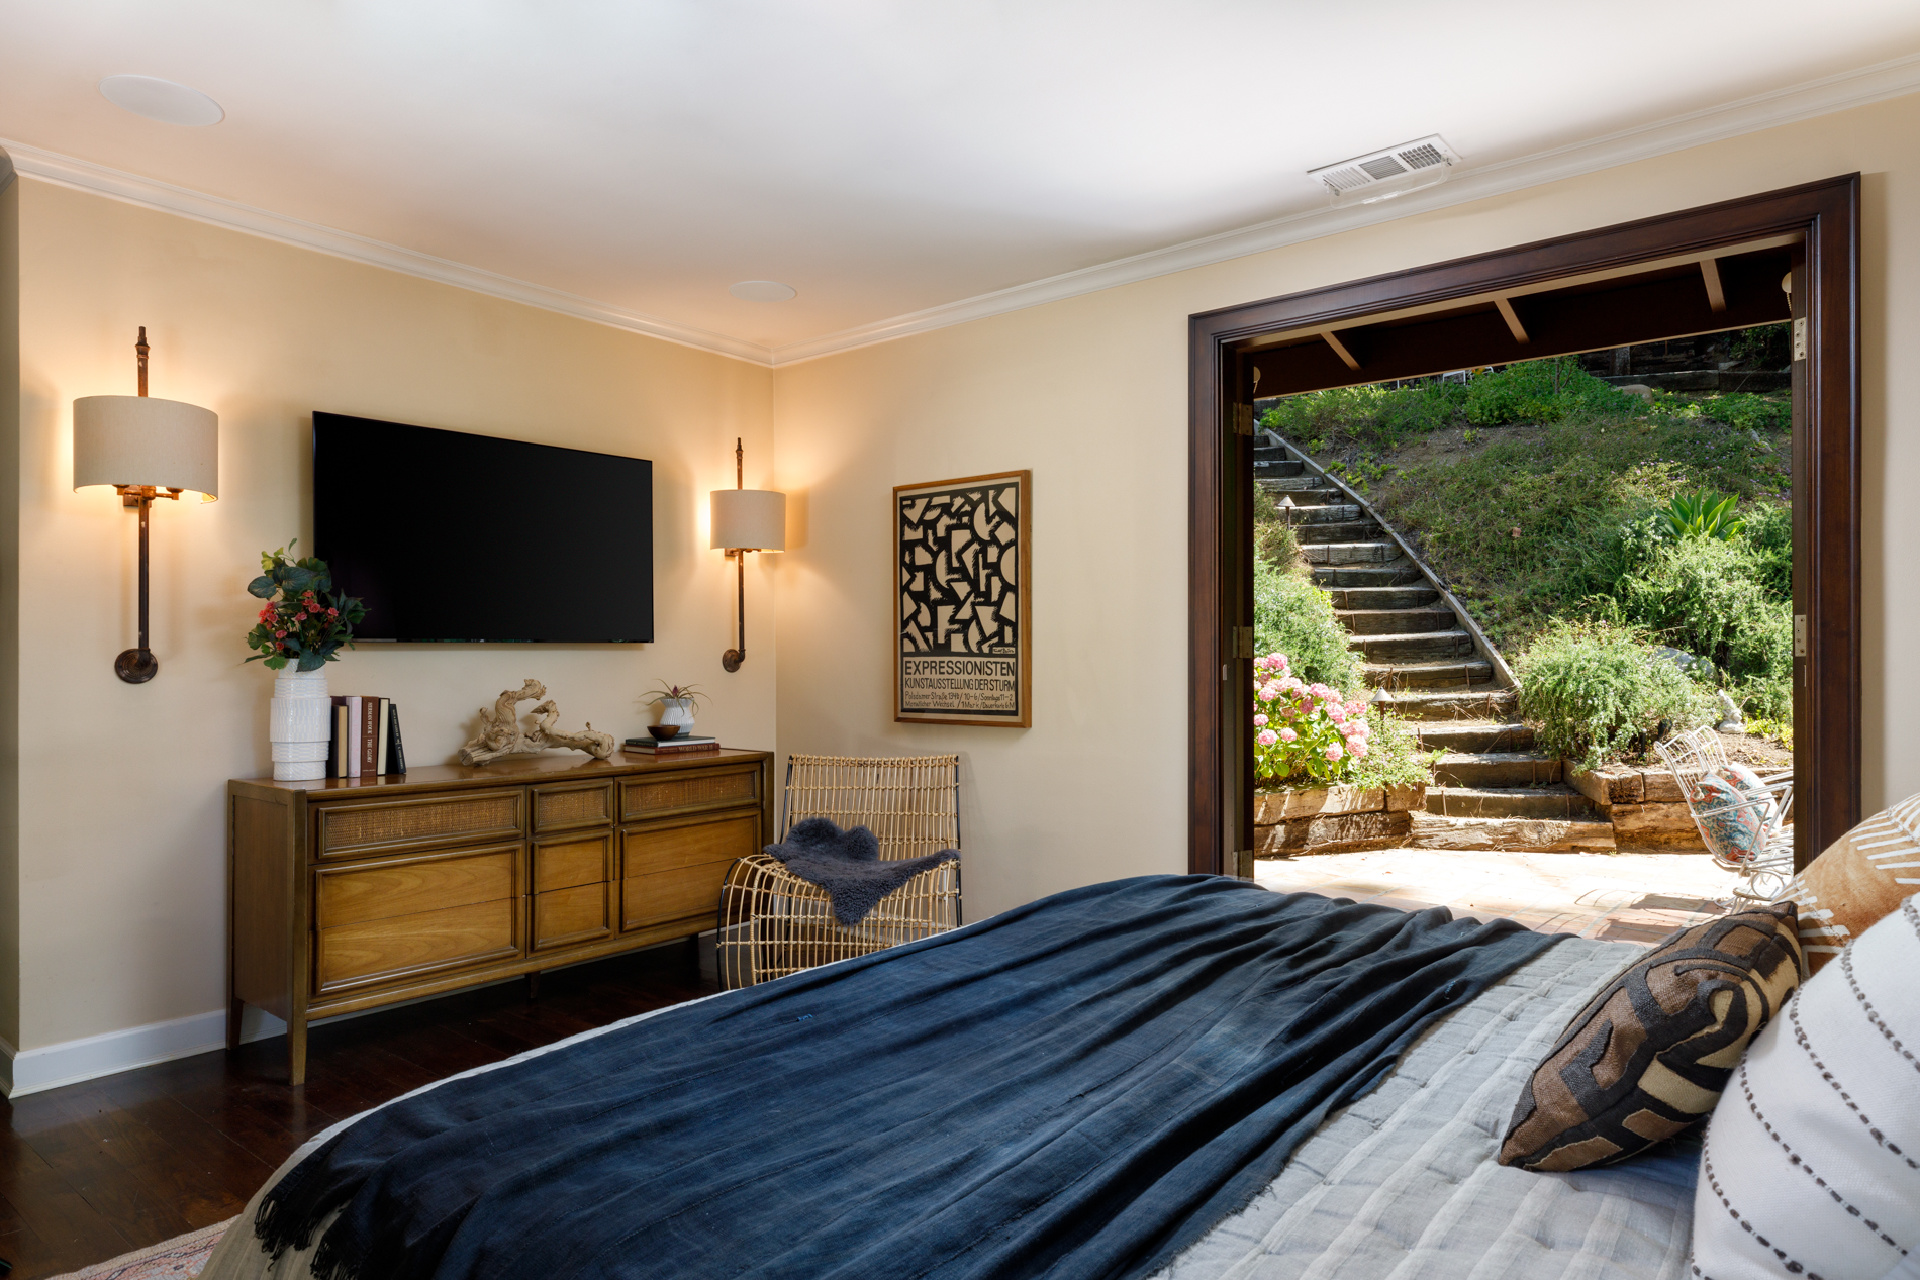 2548 Laurel Pass     |     Laurel Canyon Los Angeles CA  | Jonah Wilson